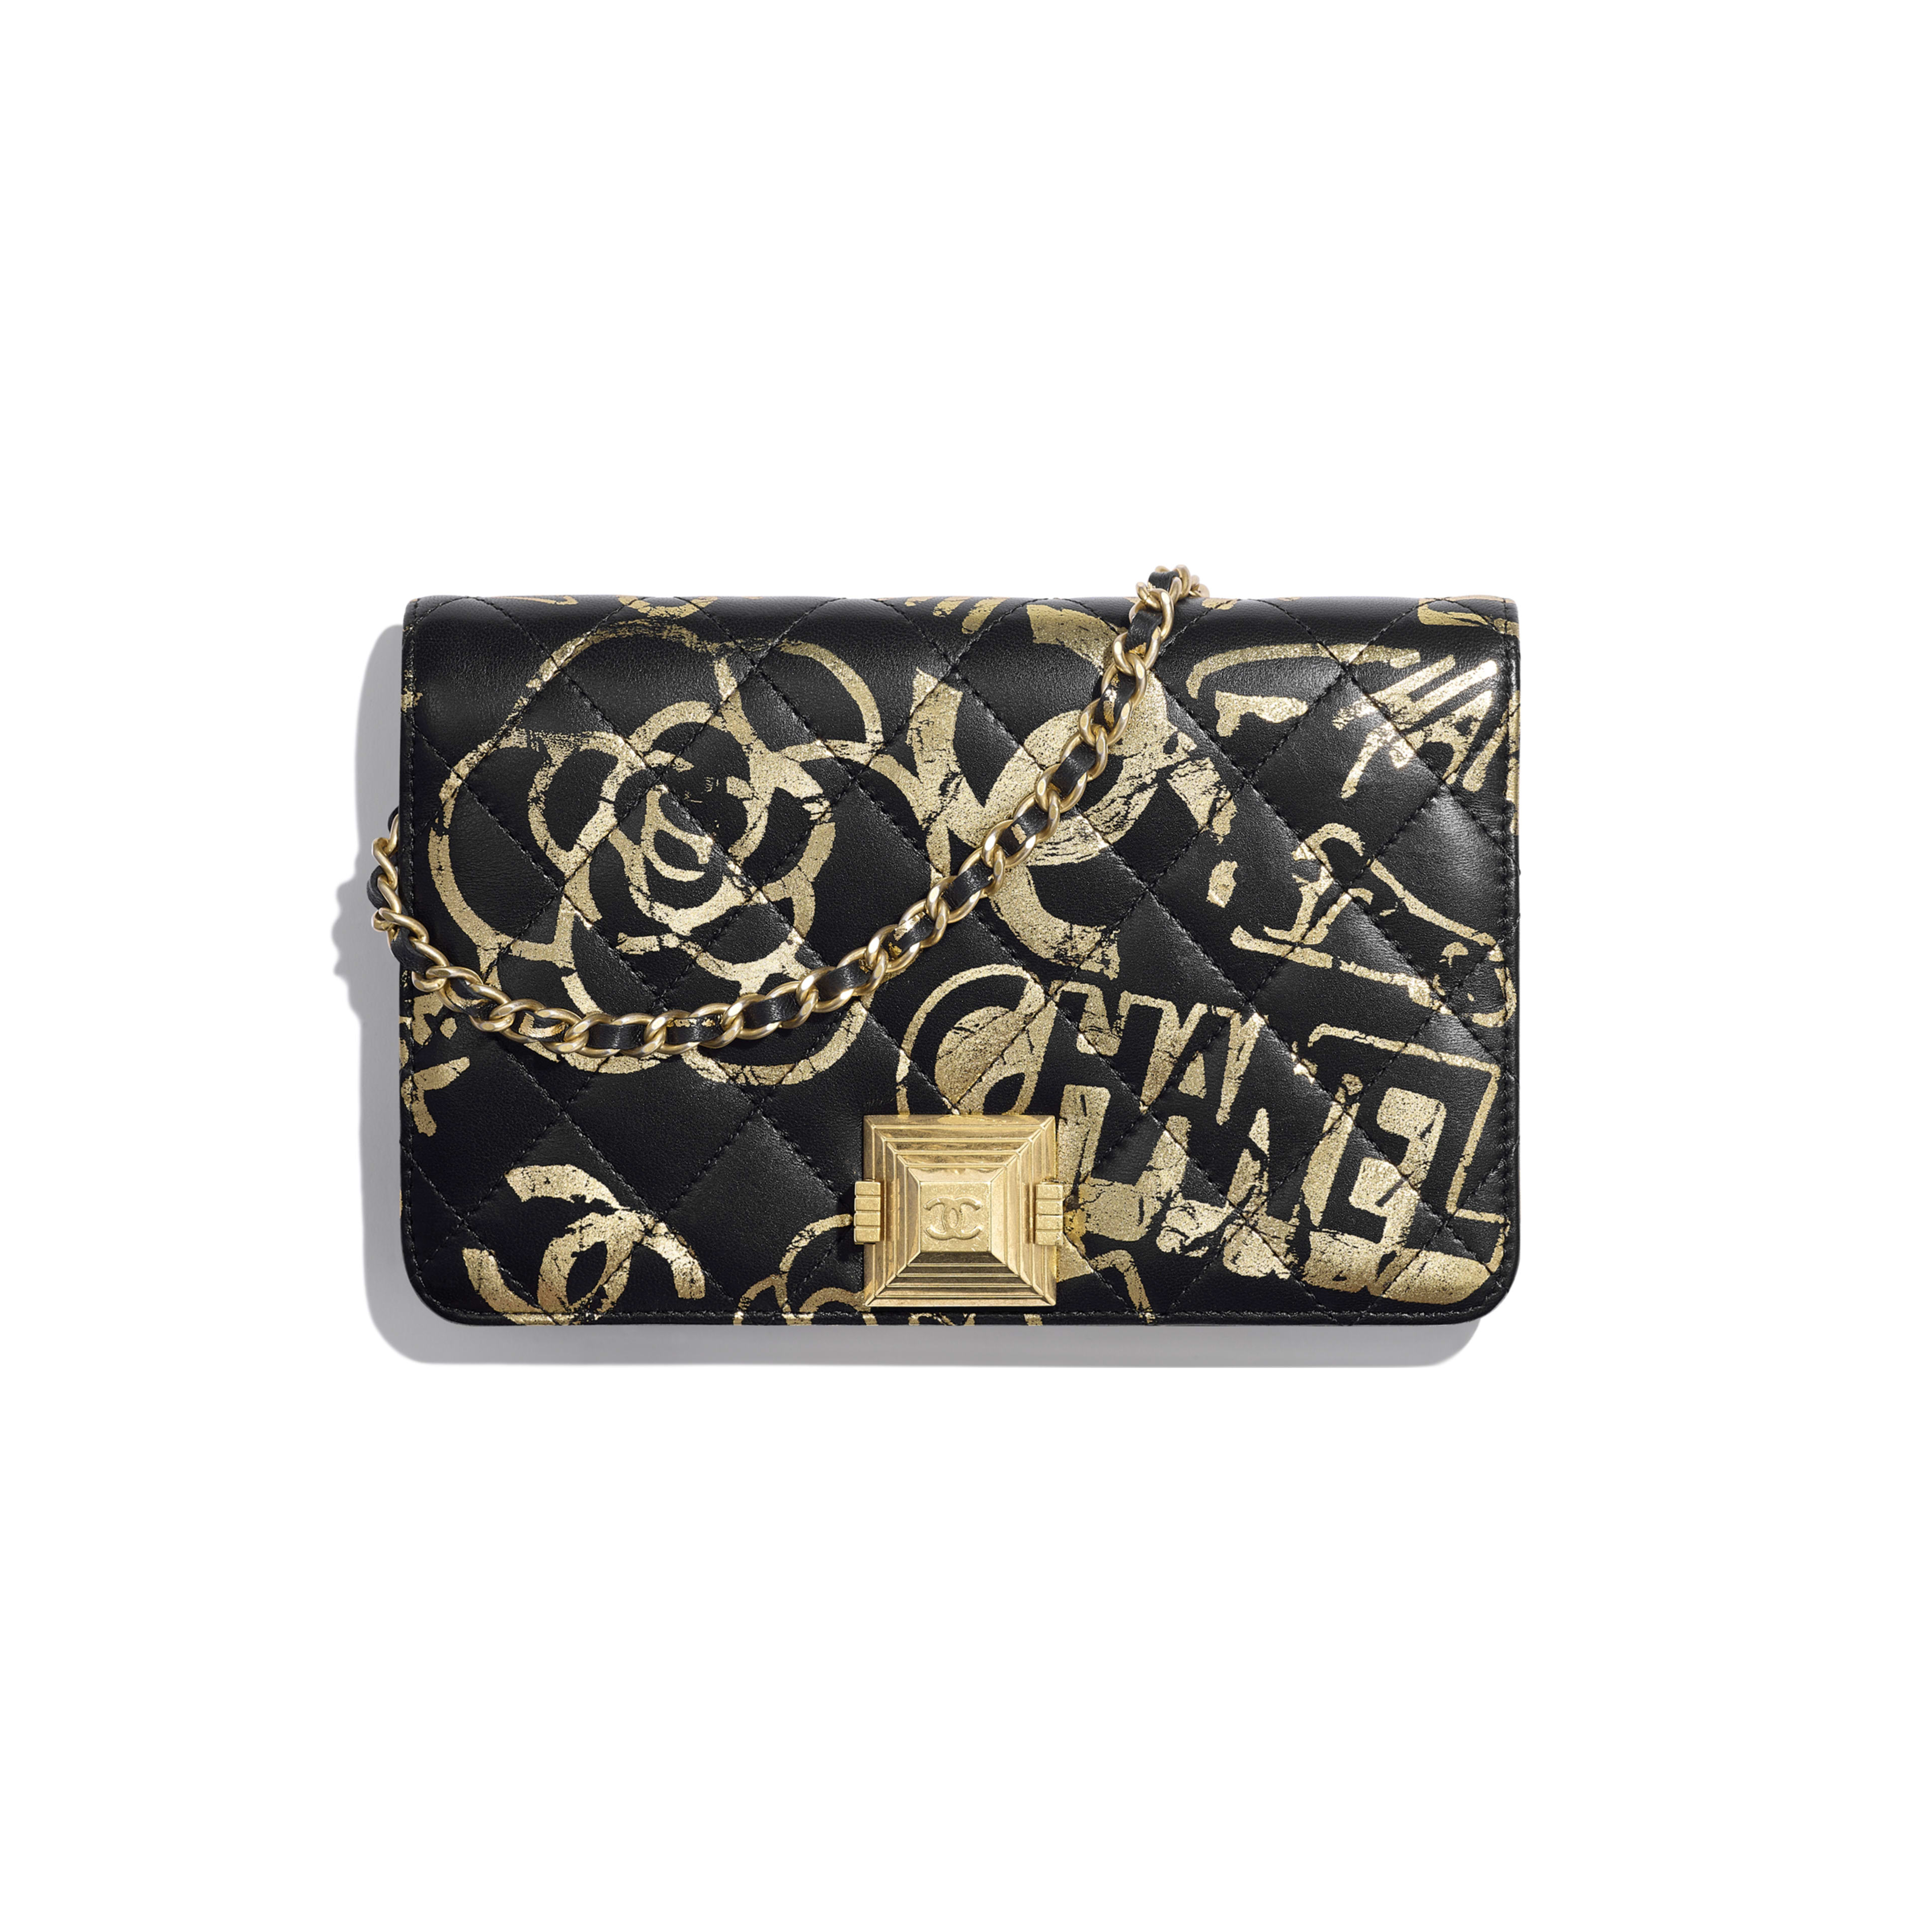 Wallet on Chain - Black & Gold - Printed Calfskin & Gold-Tone Metal - Default view - see full sized version